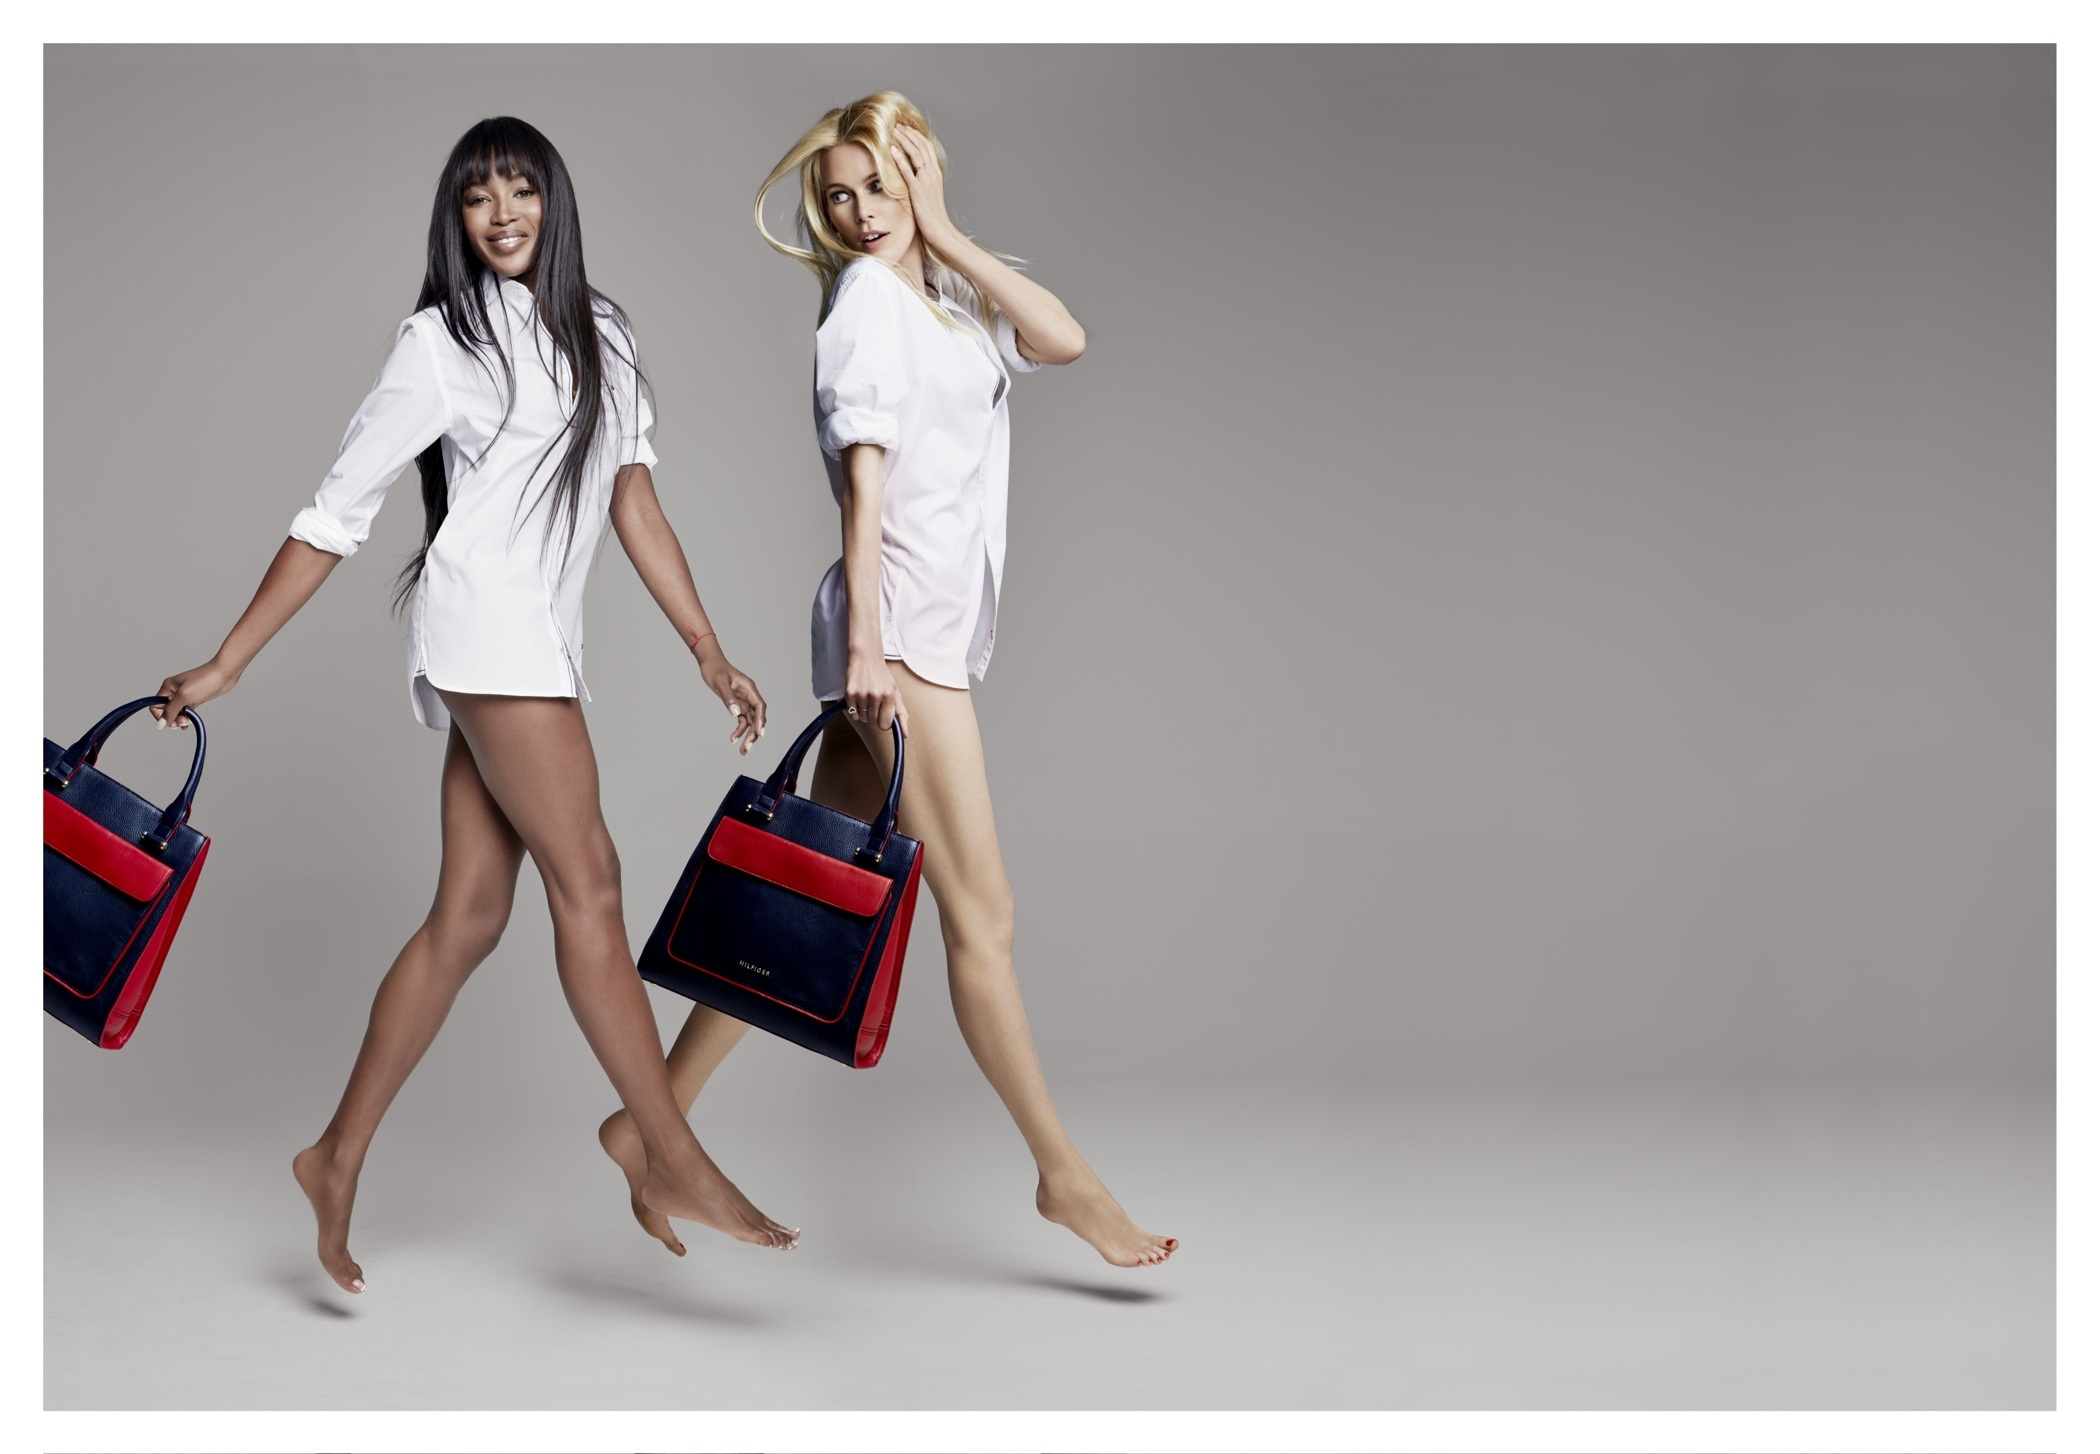 4514315f30863 Tommy Hilfiger Releases New Handbag To Support Breast Cancer Research